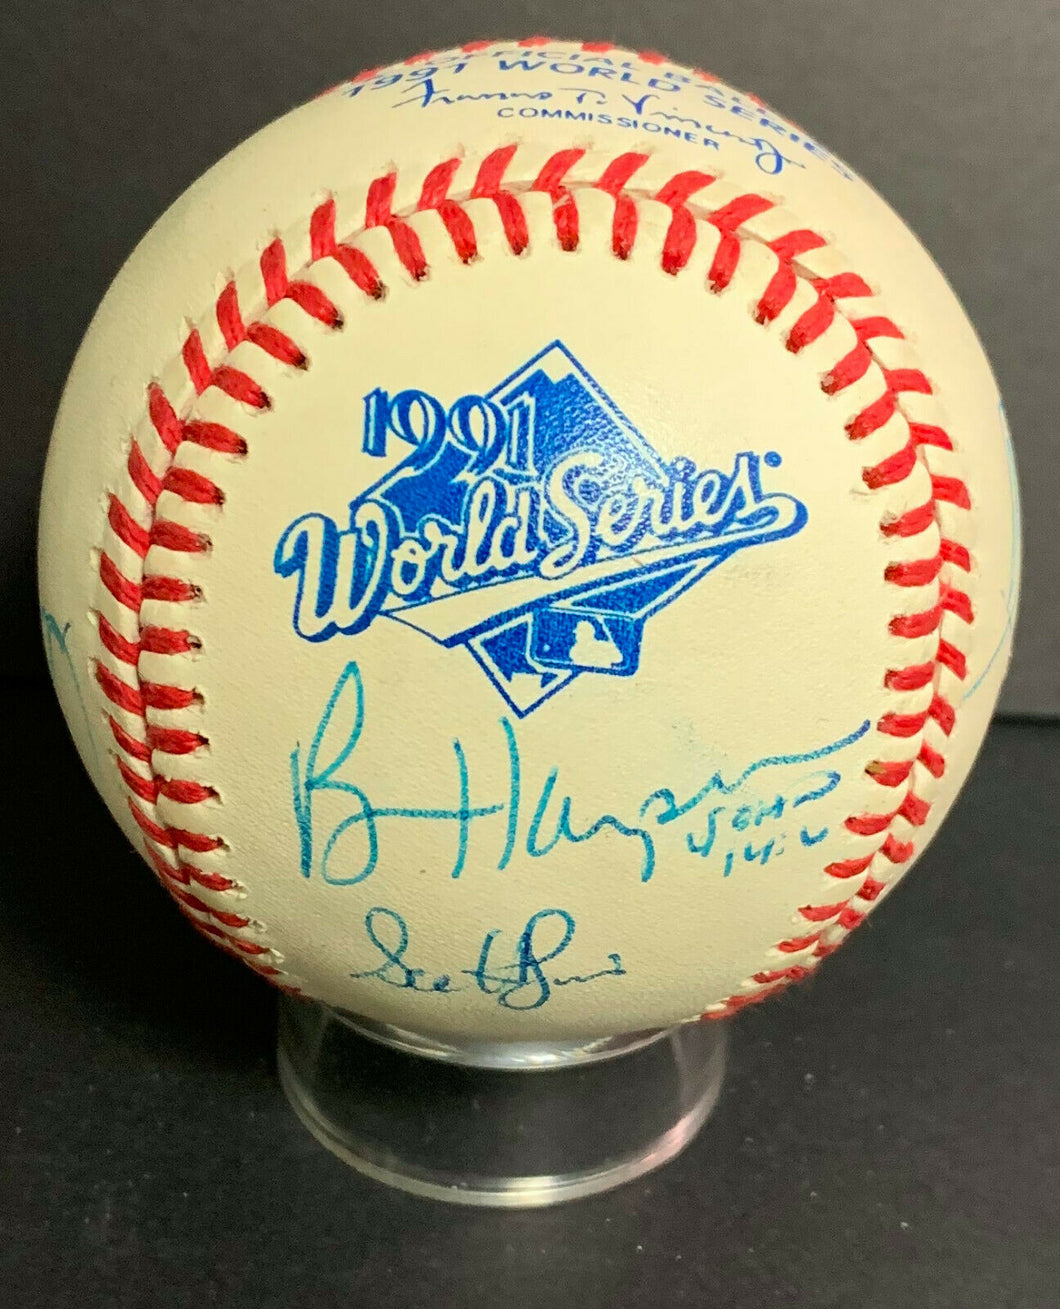 1991 World Series Multi Signed Baseball Minnesota Twins Champions x9 Puckett JSA